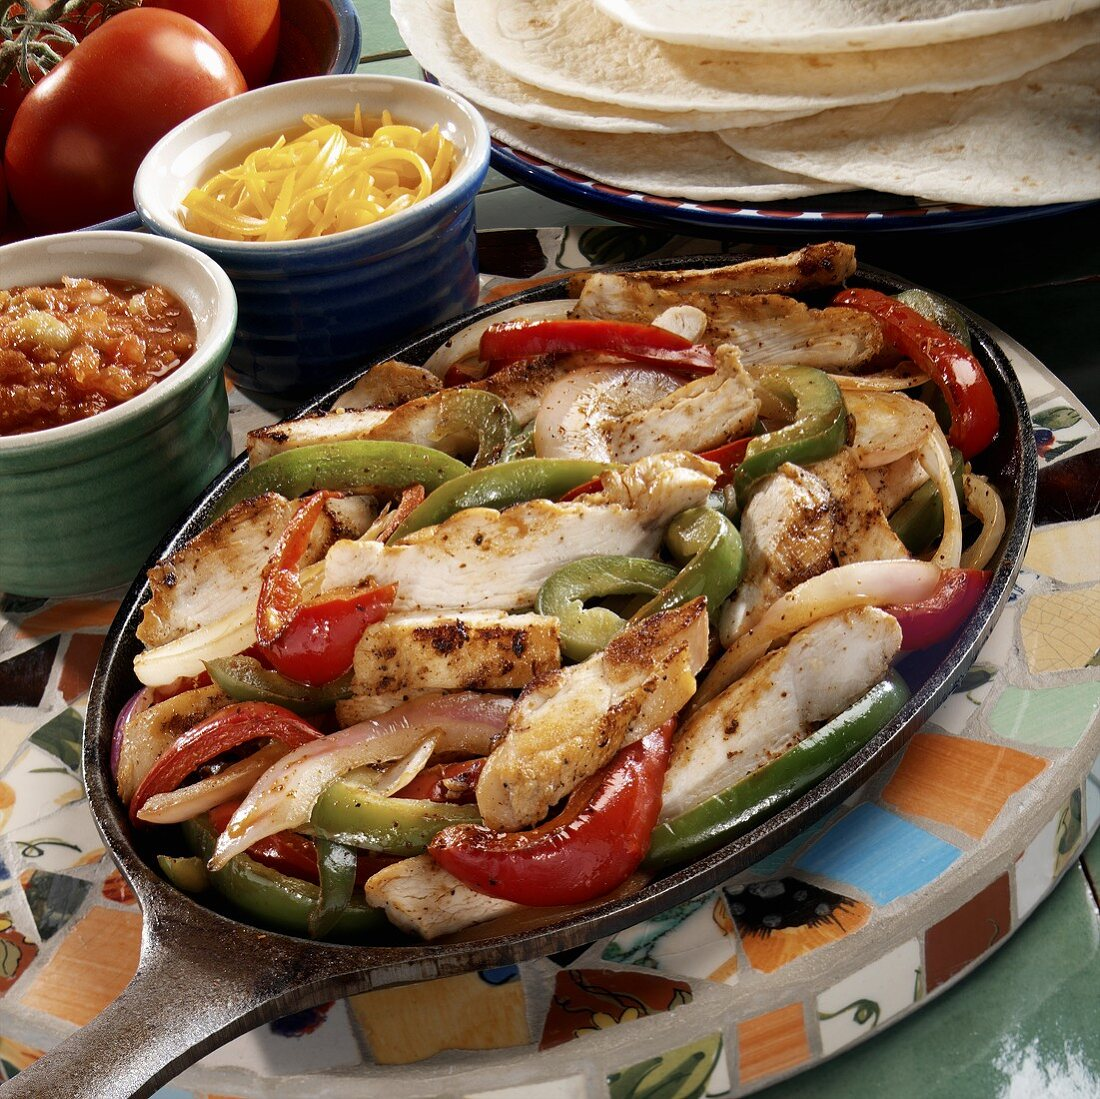 Strips of chicken with peppers (filling for fajitas)